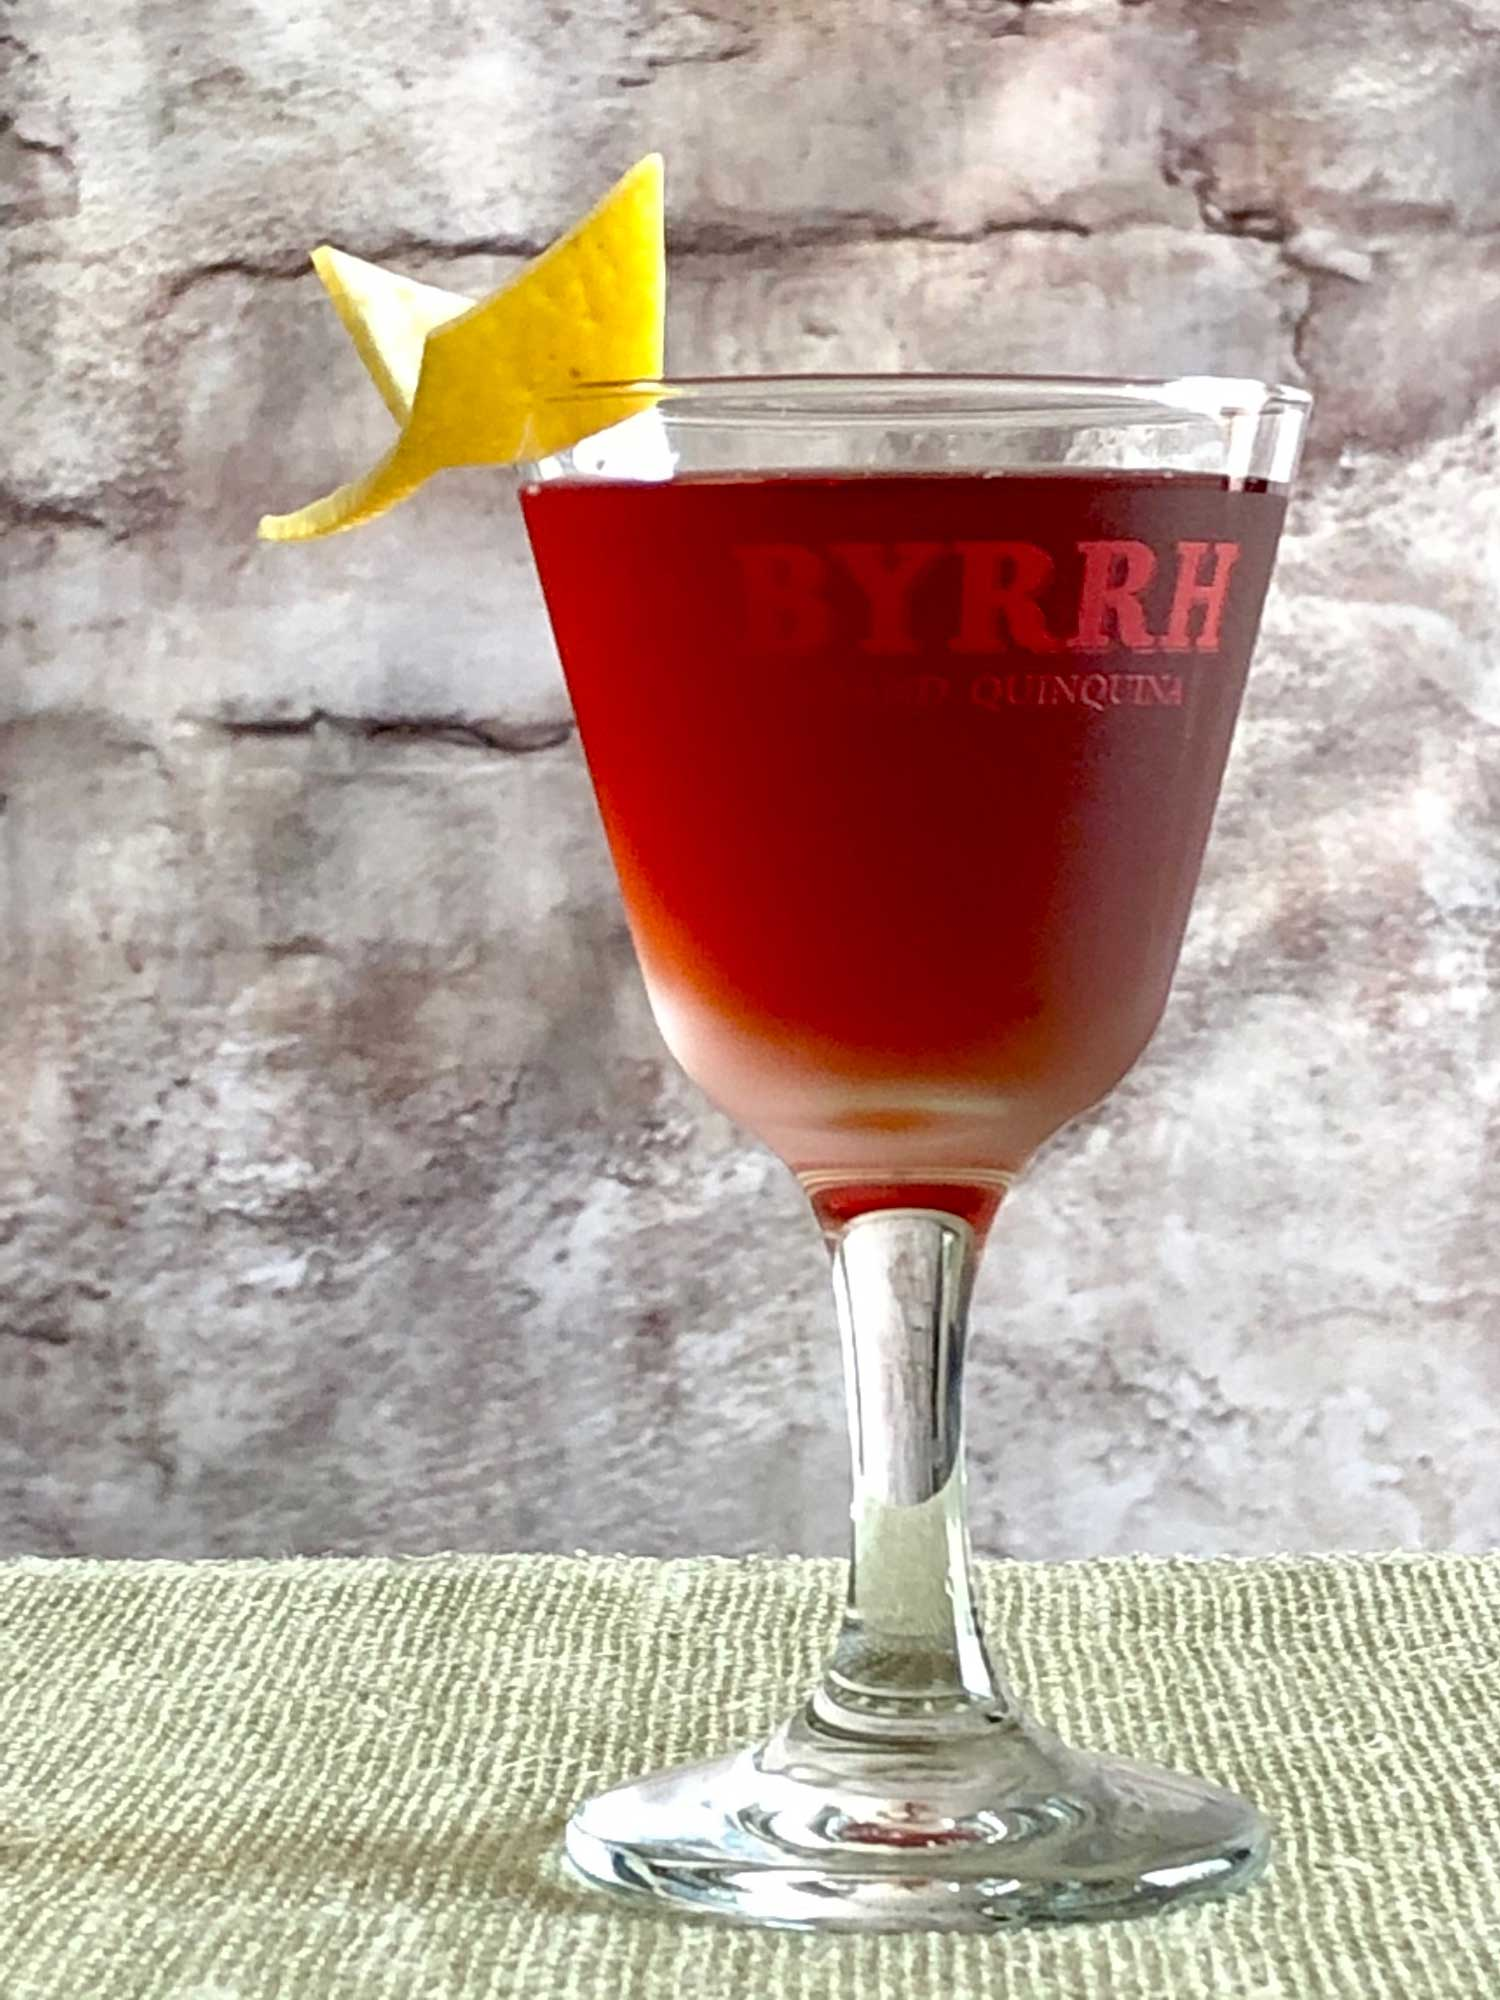 An example of the Betsy Ross, the mixed drink (cocktail), by David Embury, The Fine Art of Mixing Drinks, featuring grape brandy, Byrrh Grand Quinquina, curaçao, and Angostura bitters; photo by Lee Edwards